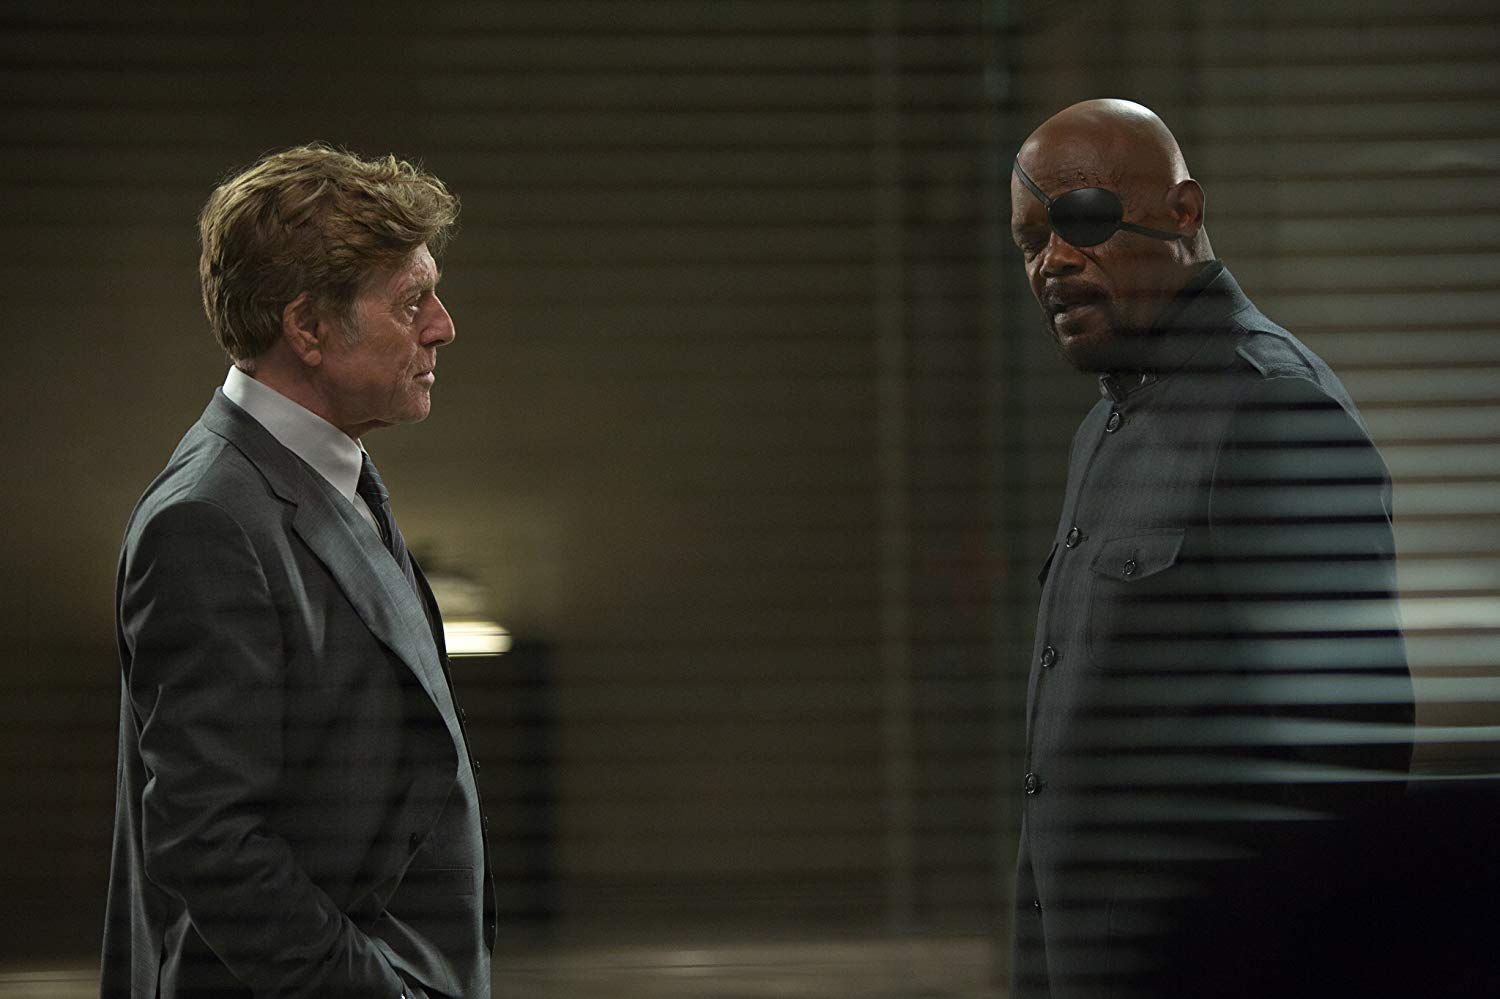 Alexander Pierce (Robert Redford) and Nick Fury (Samuel L. Jackson) in Captain America: The Winter Soldier (2014)